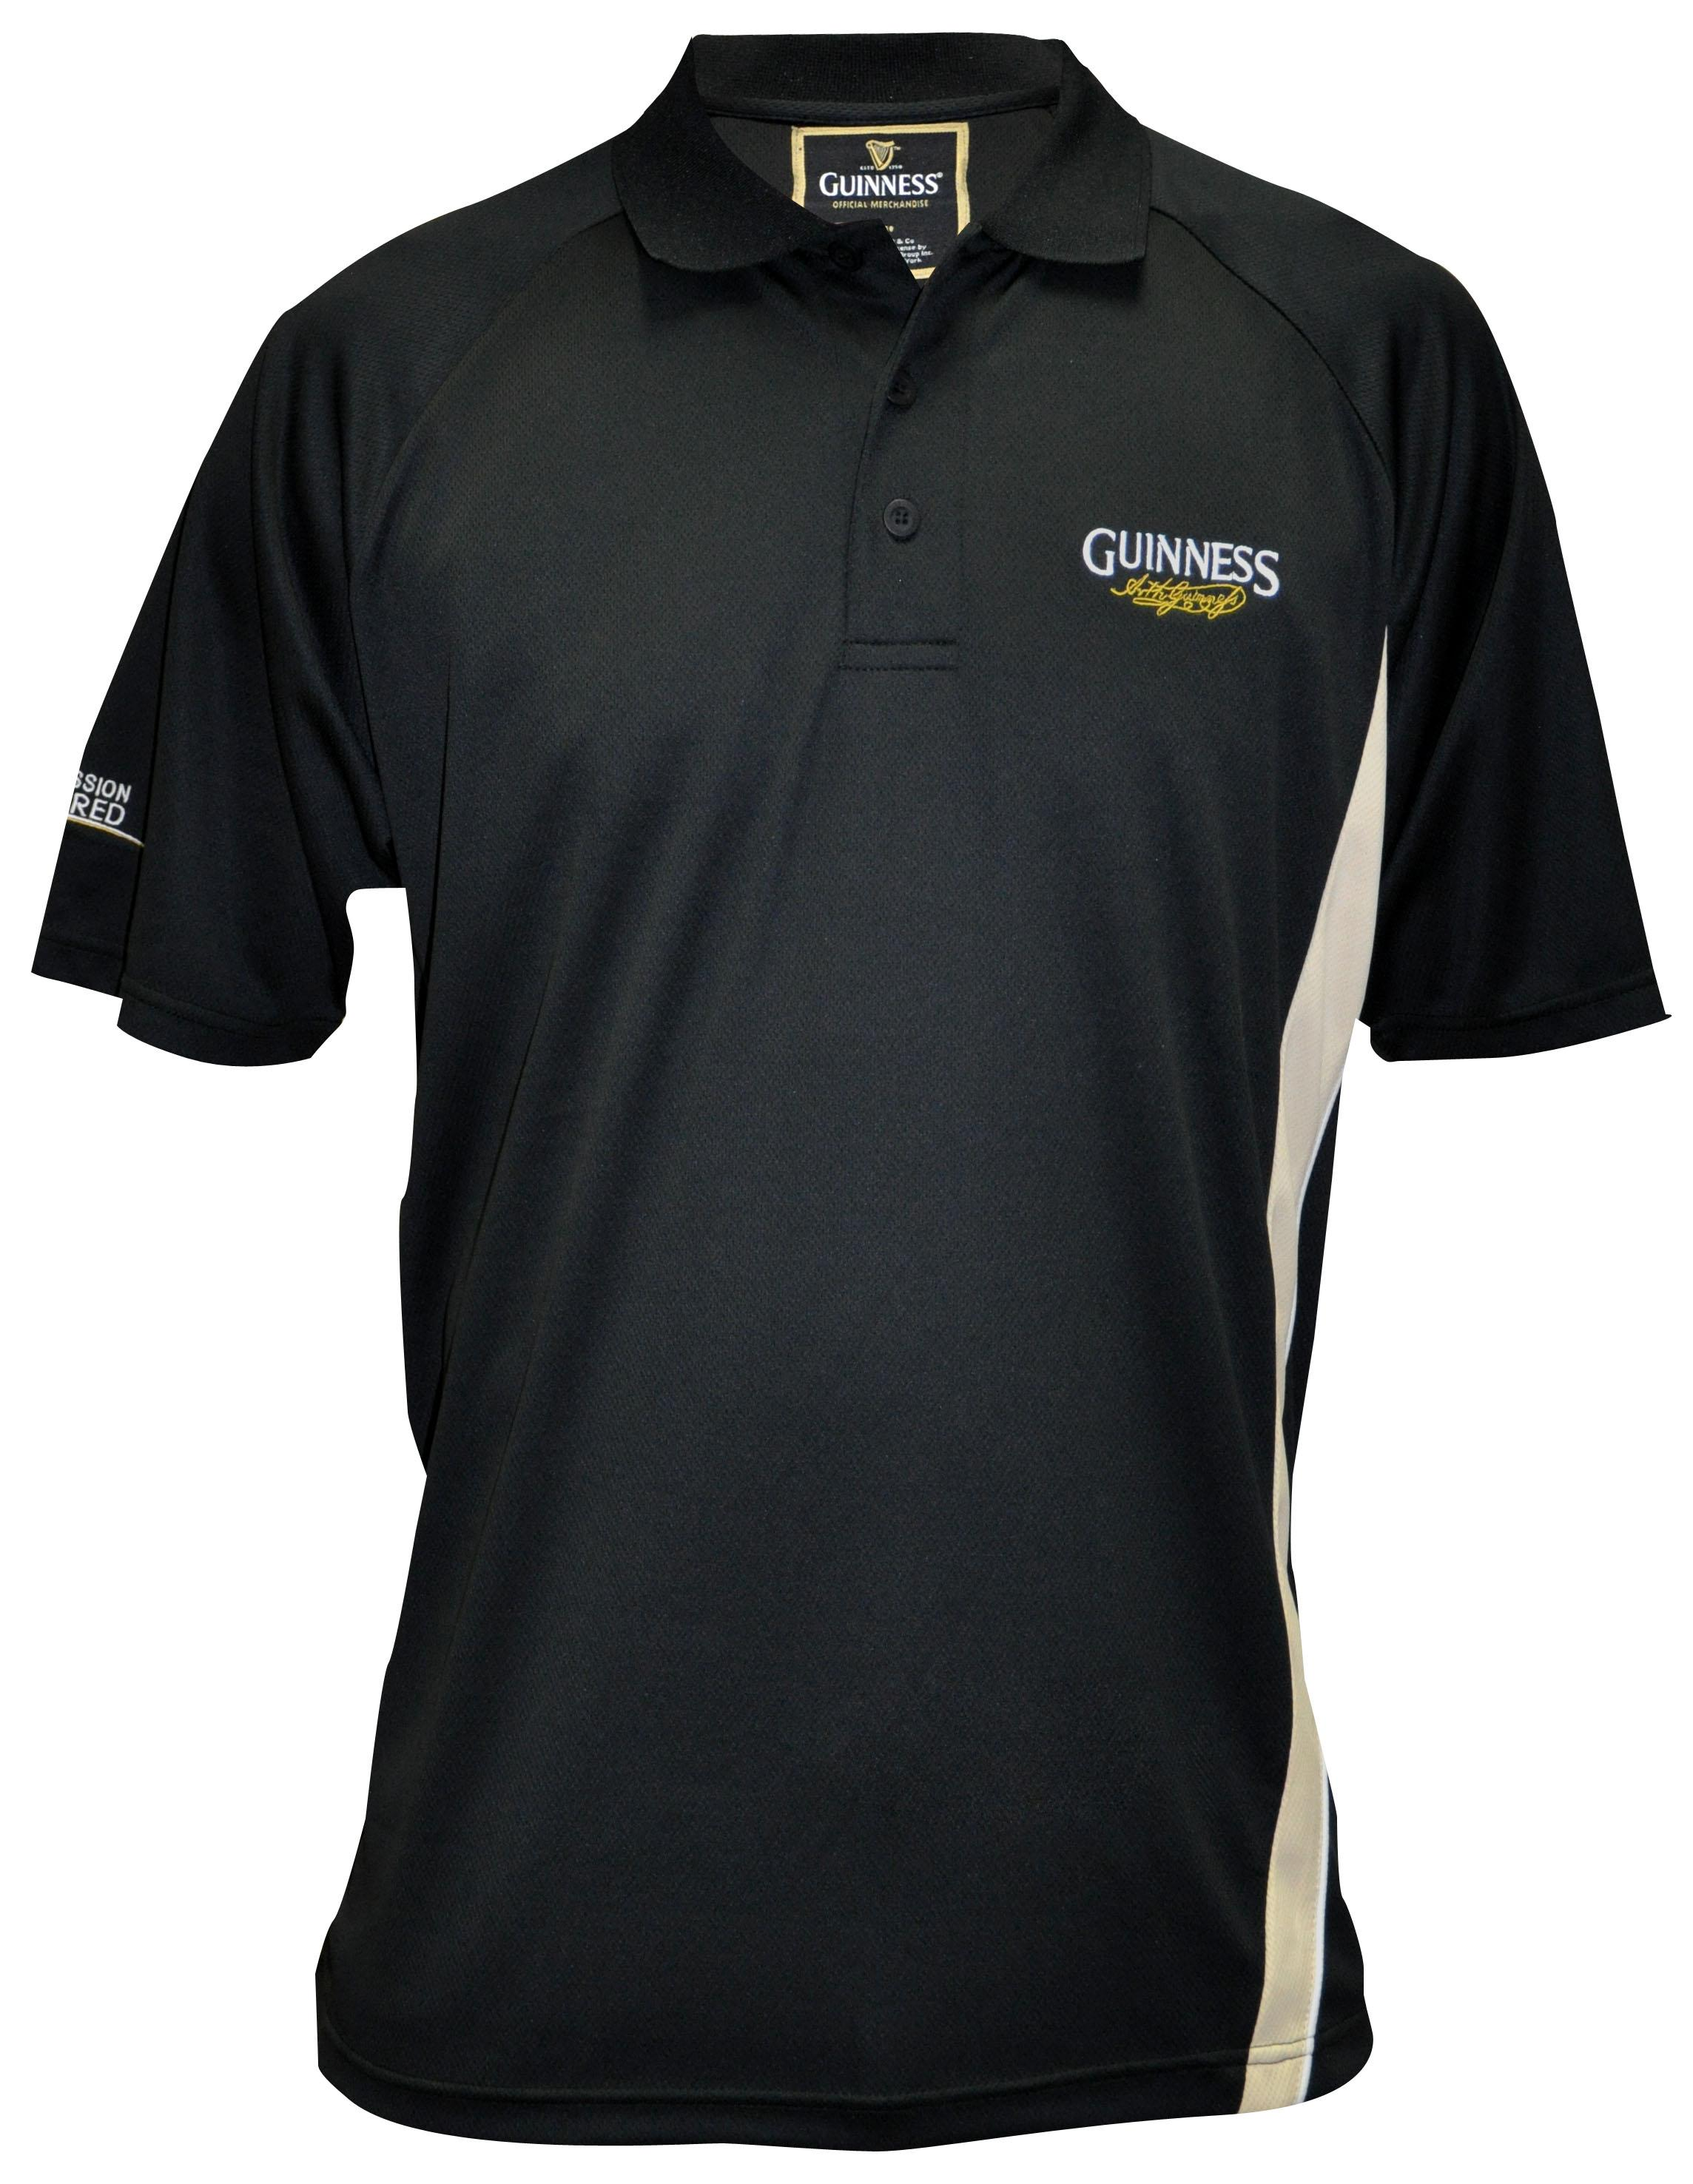 Arthur Guinness® Signature Golf Shirt